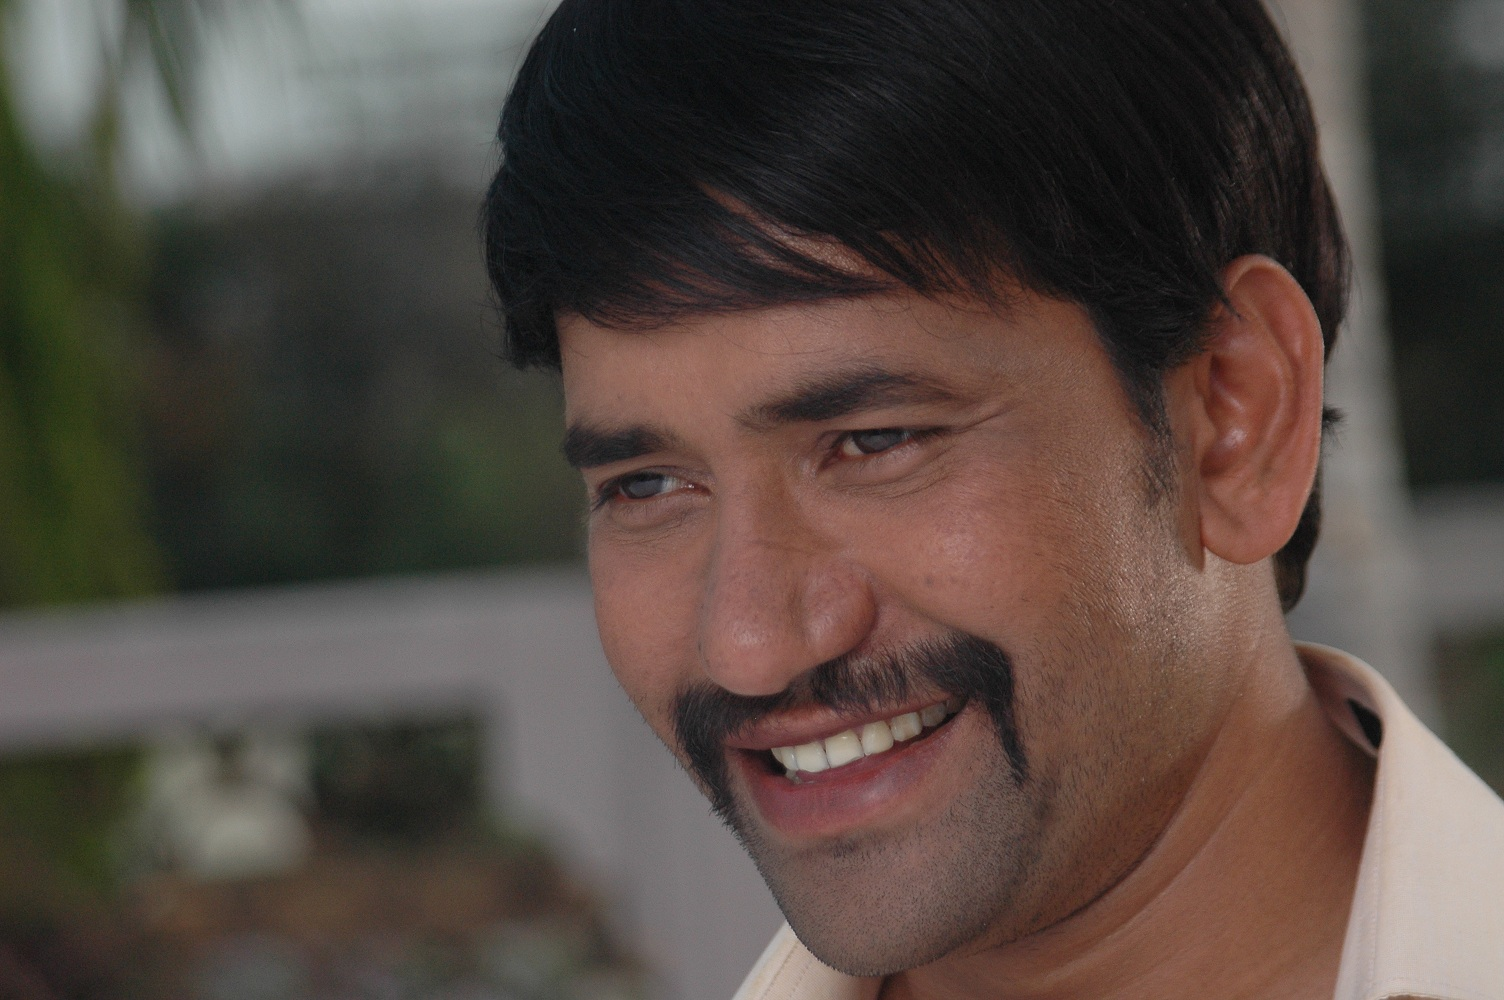 Dinesh Lal Yadav 'Nirahua' wiki, Biography, Nirahua Wife, Profile details. Bhojpuri actor, Singer Dineh Lal Yadav  filmography wiki, upcoming movies list info, Check out Dinesh Lal Yadav, Amrapali dubey Latest HD photos, Images, Wallpaper